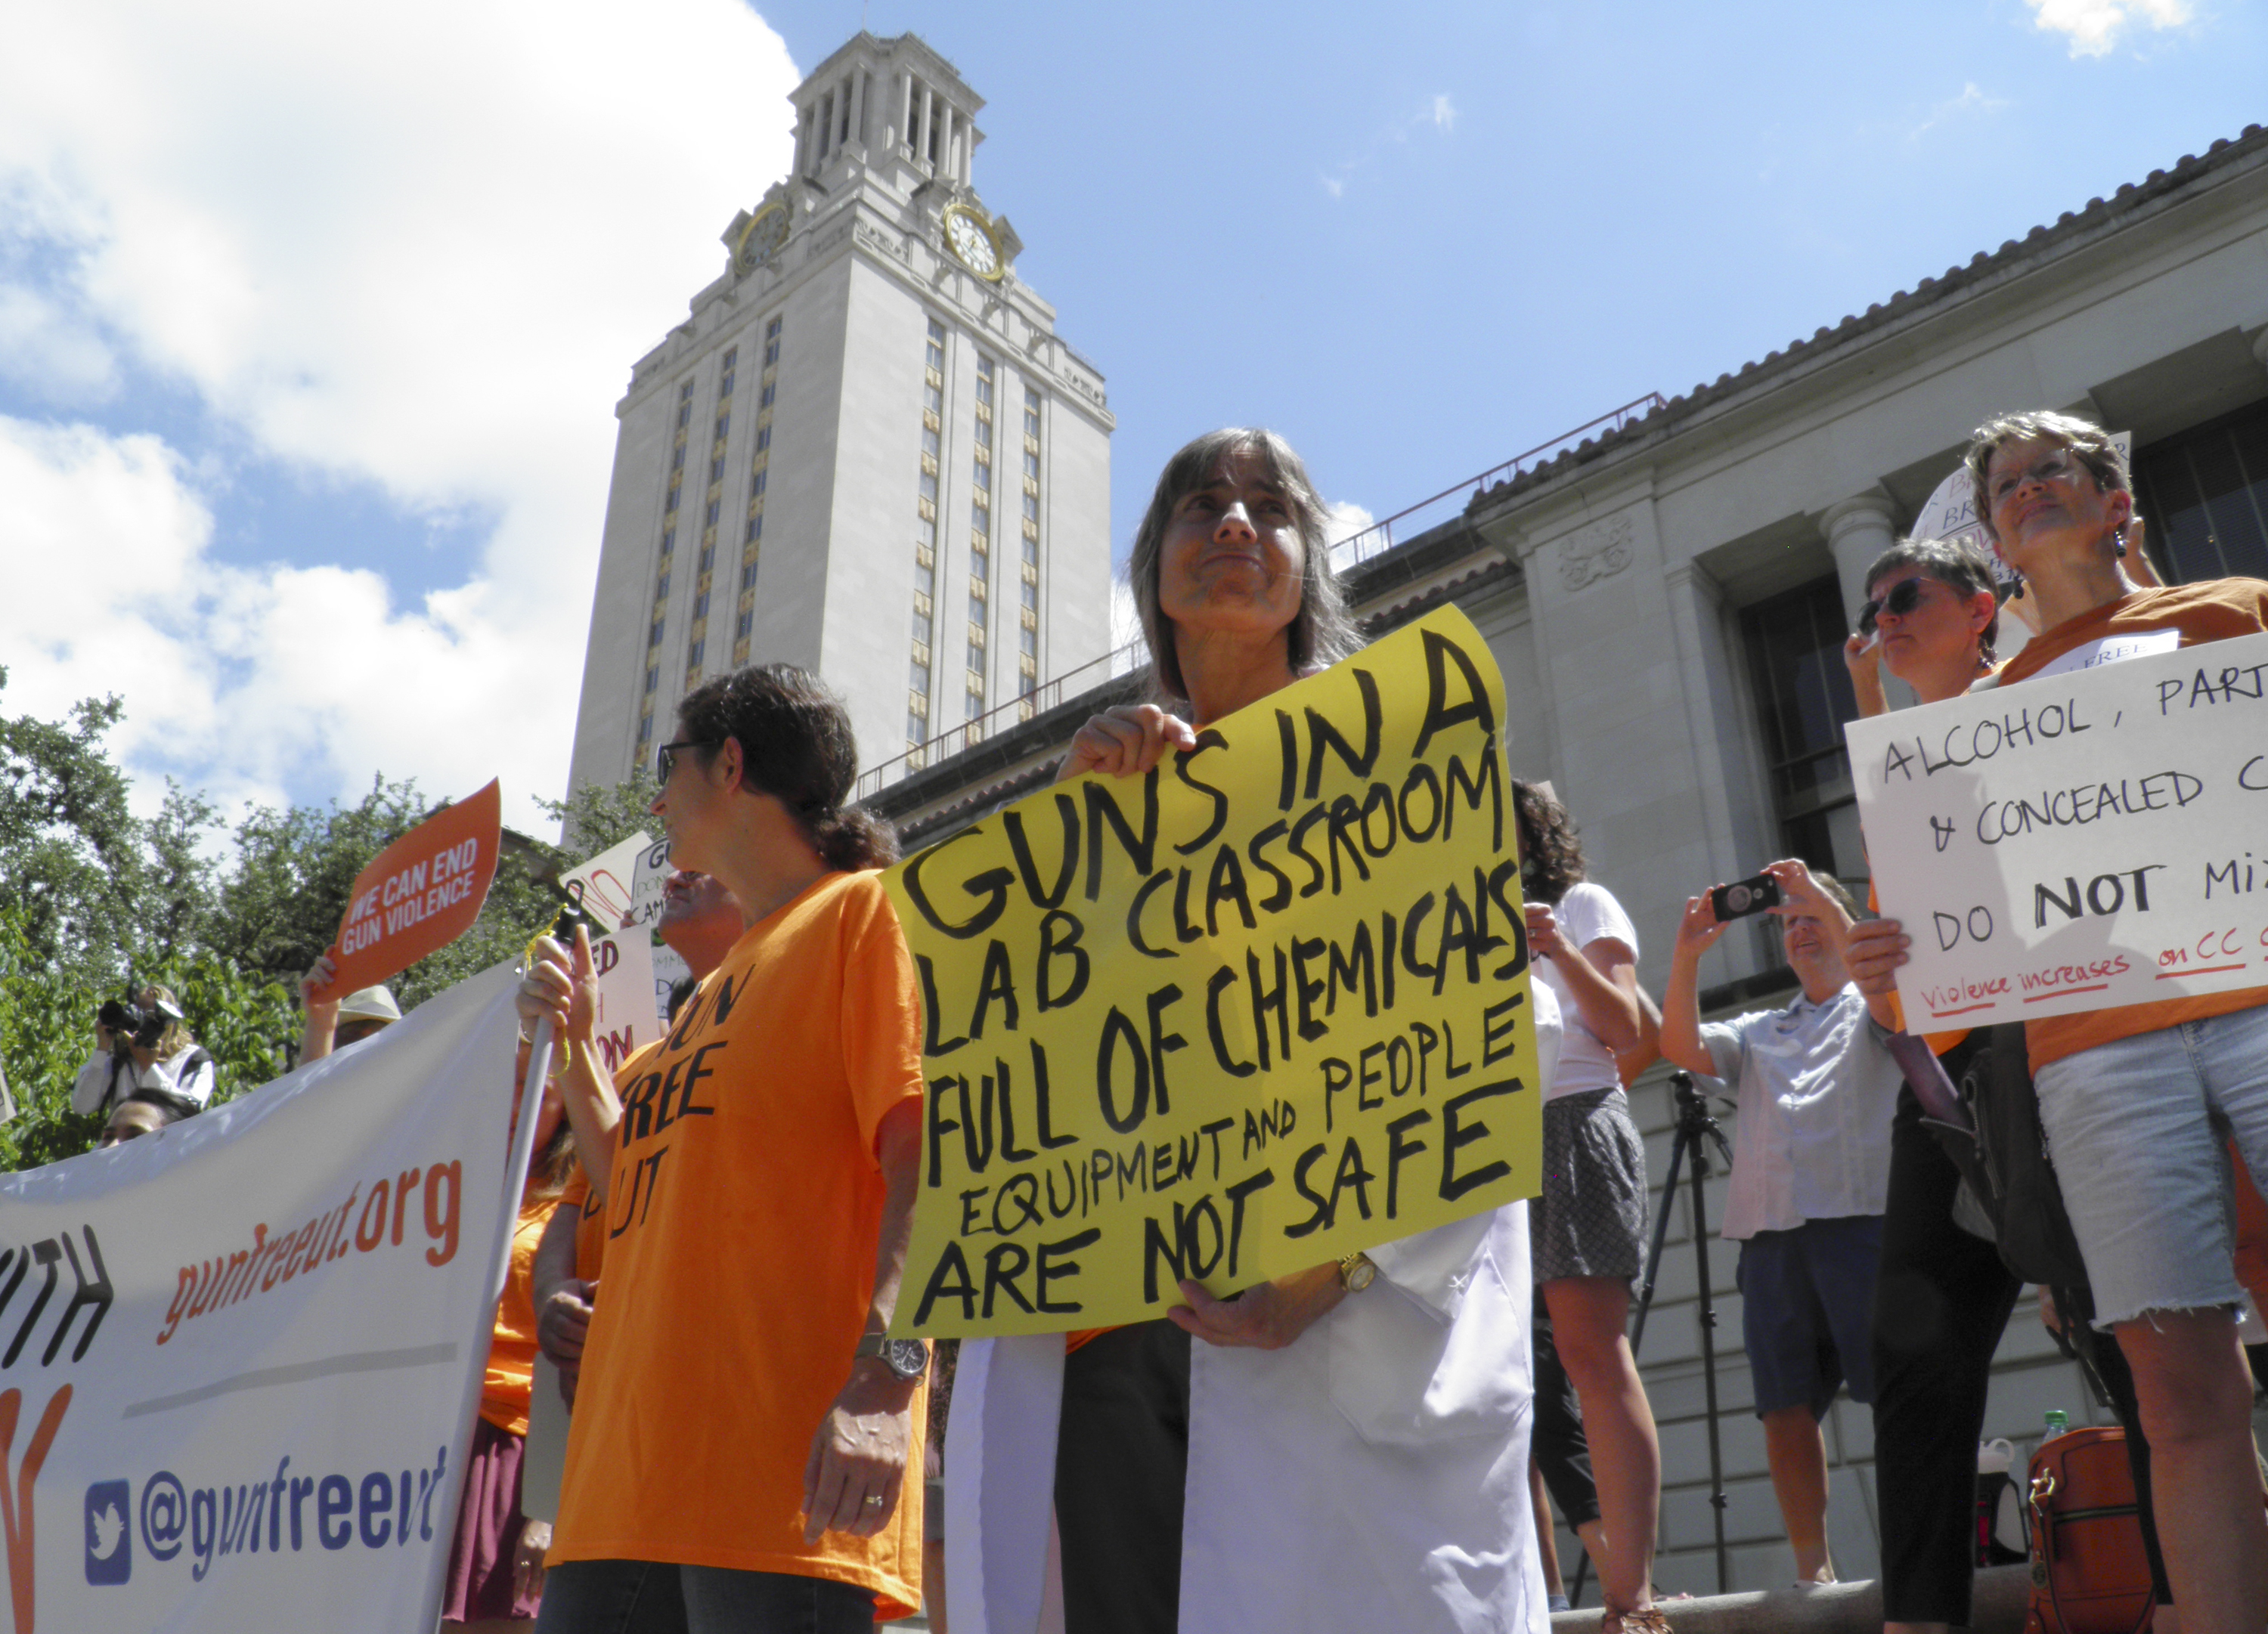 FILE - Faculty and staff at the University of Texas protest against a state law that allows for guns in classrooms at college campuses, in Austin, Texas, U.S. August 24, 2016.